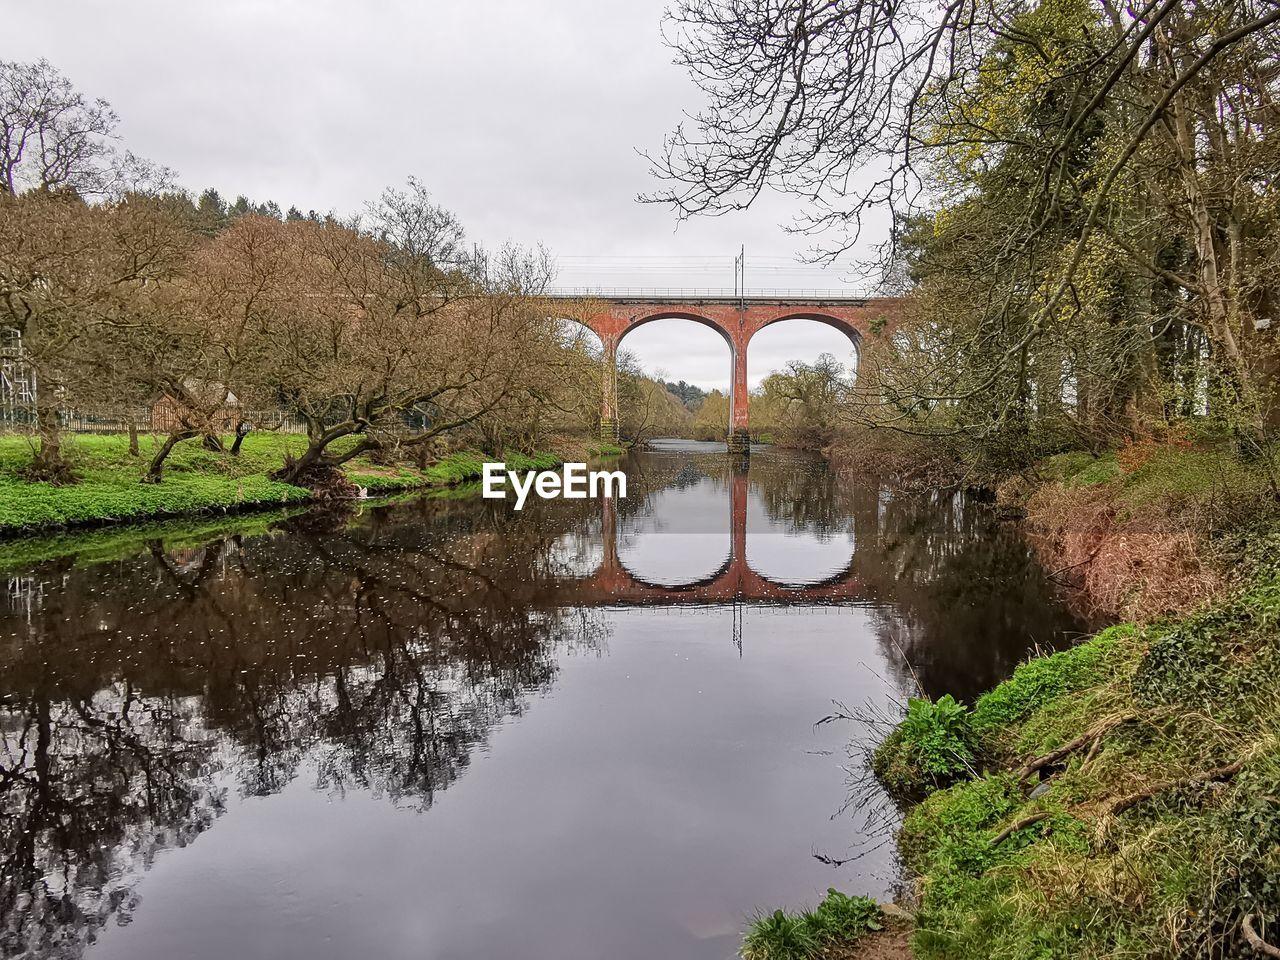 reflection, water, tree, bridge, plant, bridge - man made structure, connection, sky, nature, no people, arch, waterfront, tranquility, built structure, architecture, beauty in nature, arch bridge, day, river, outdoors, arched